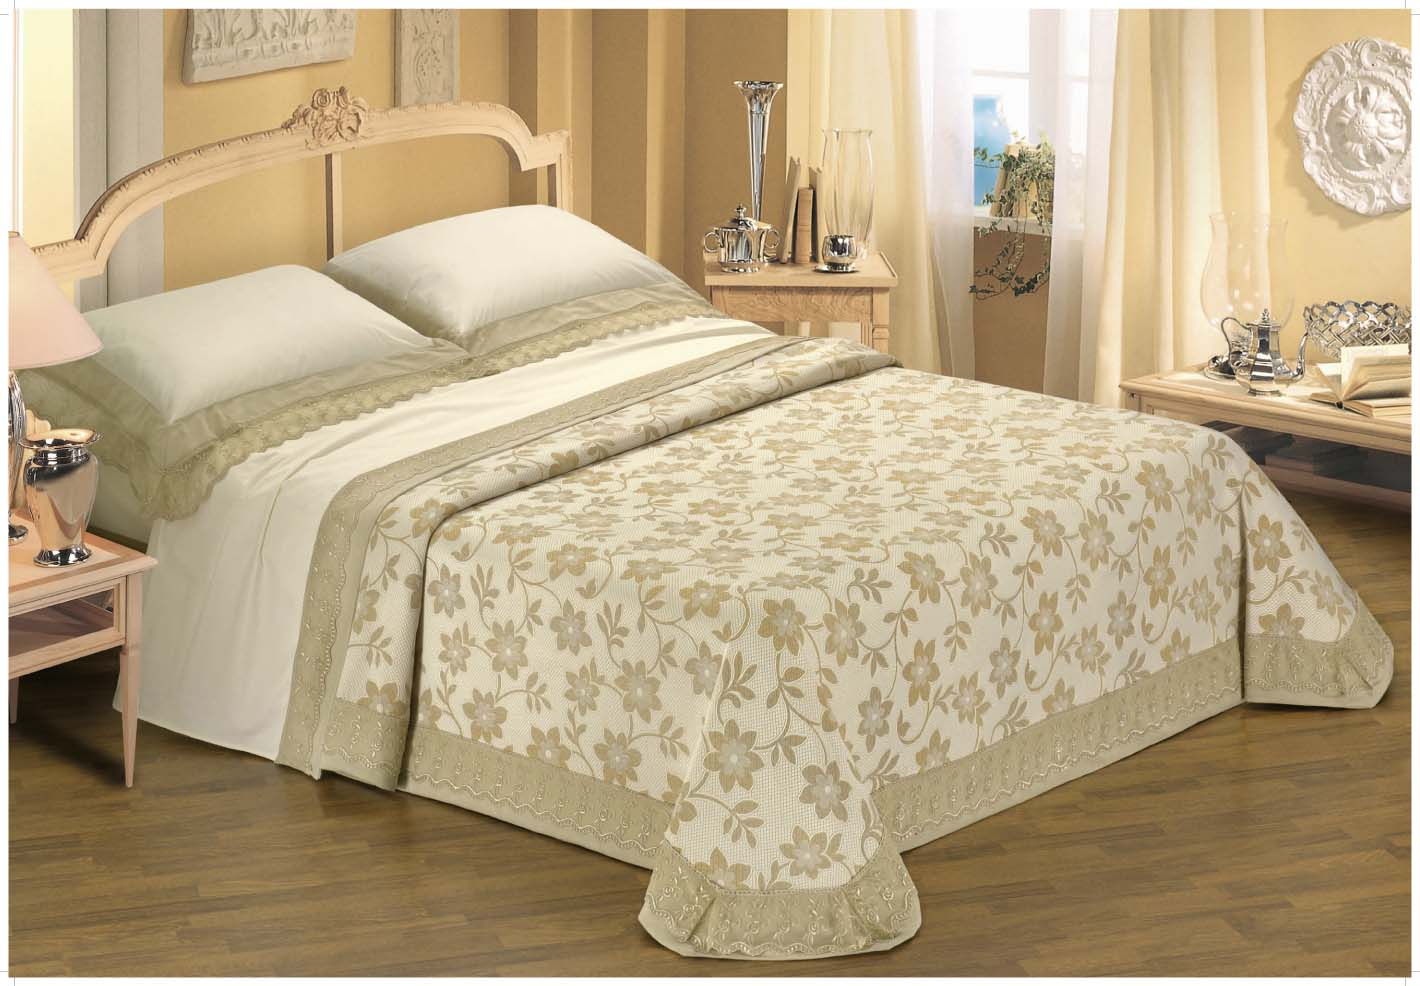 Modern bed sheet design - Bed Linen Sheet Set